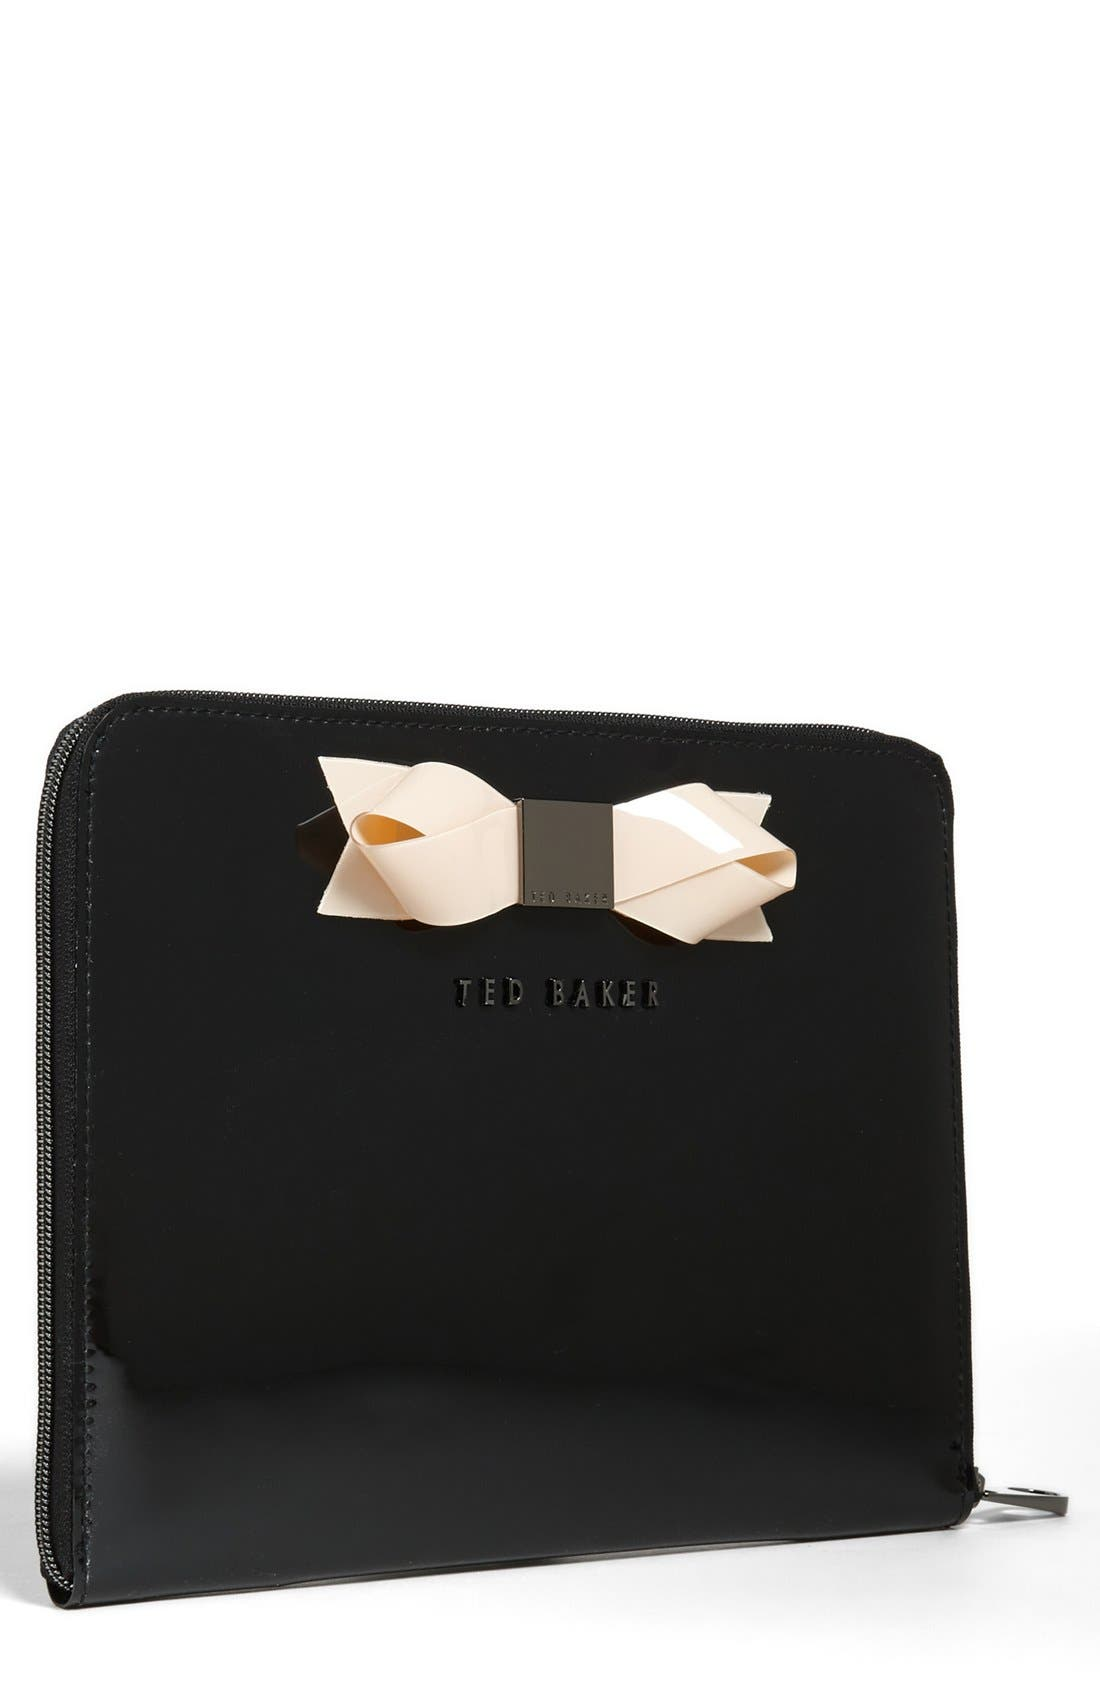 TED BAKER LONDON,                             iPad Case,                             Main thumbnail 1, color,                             001